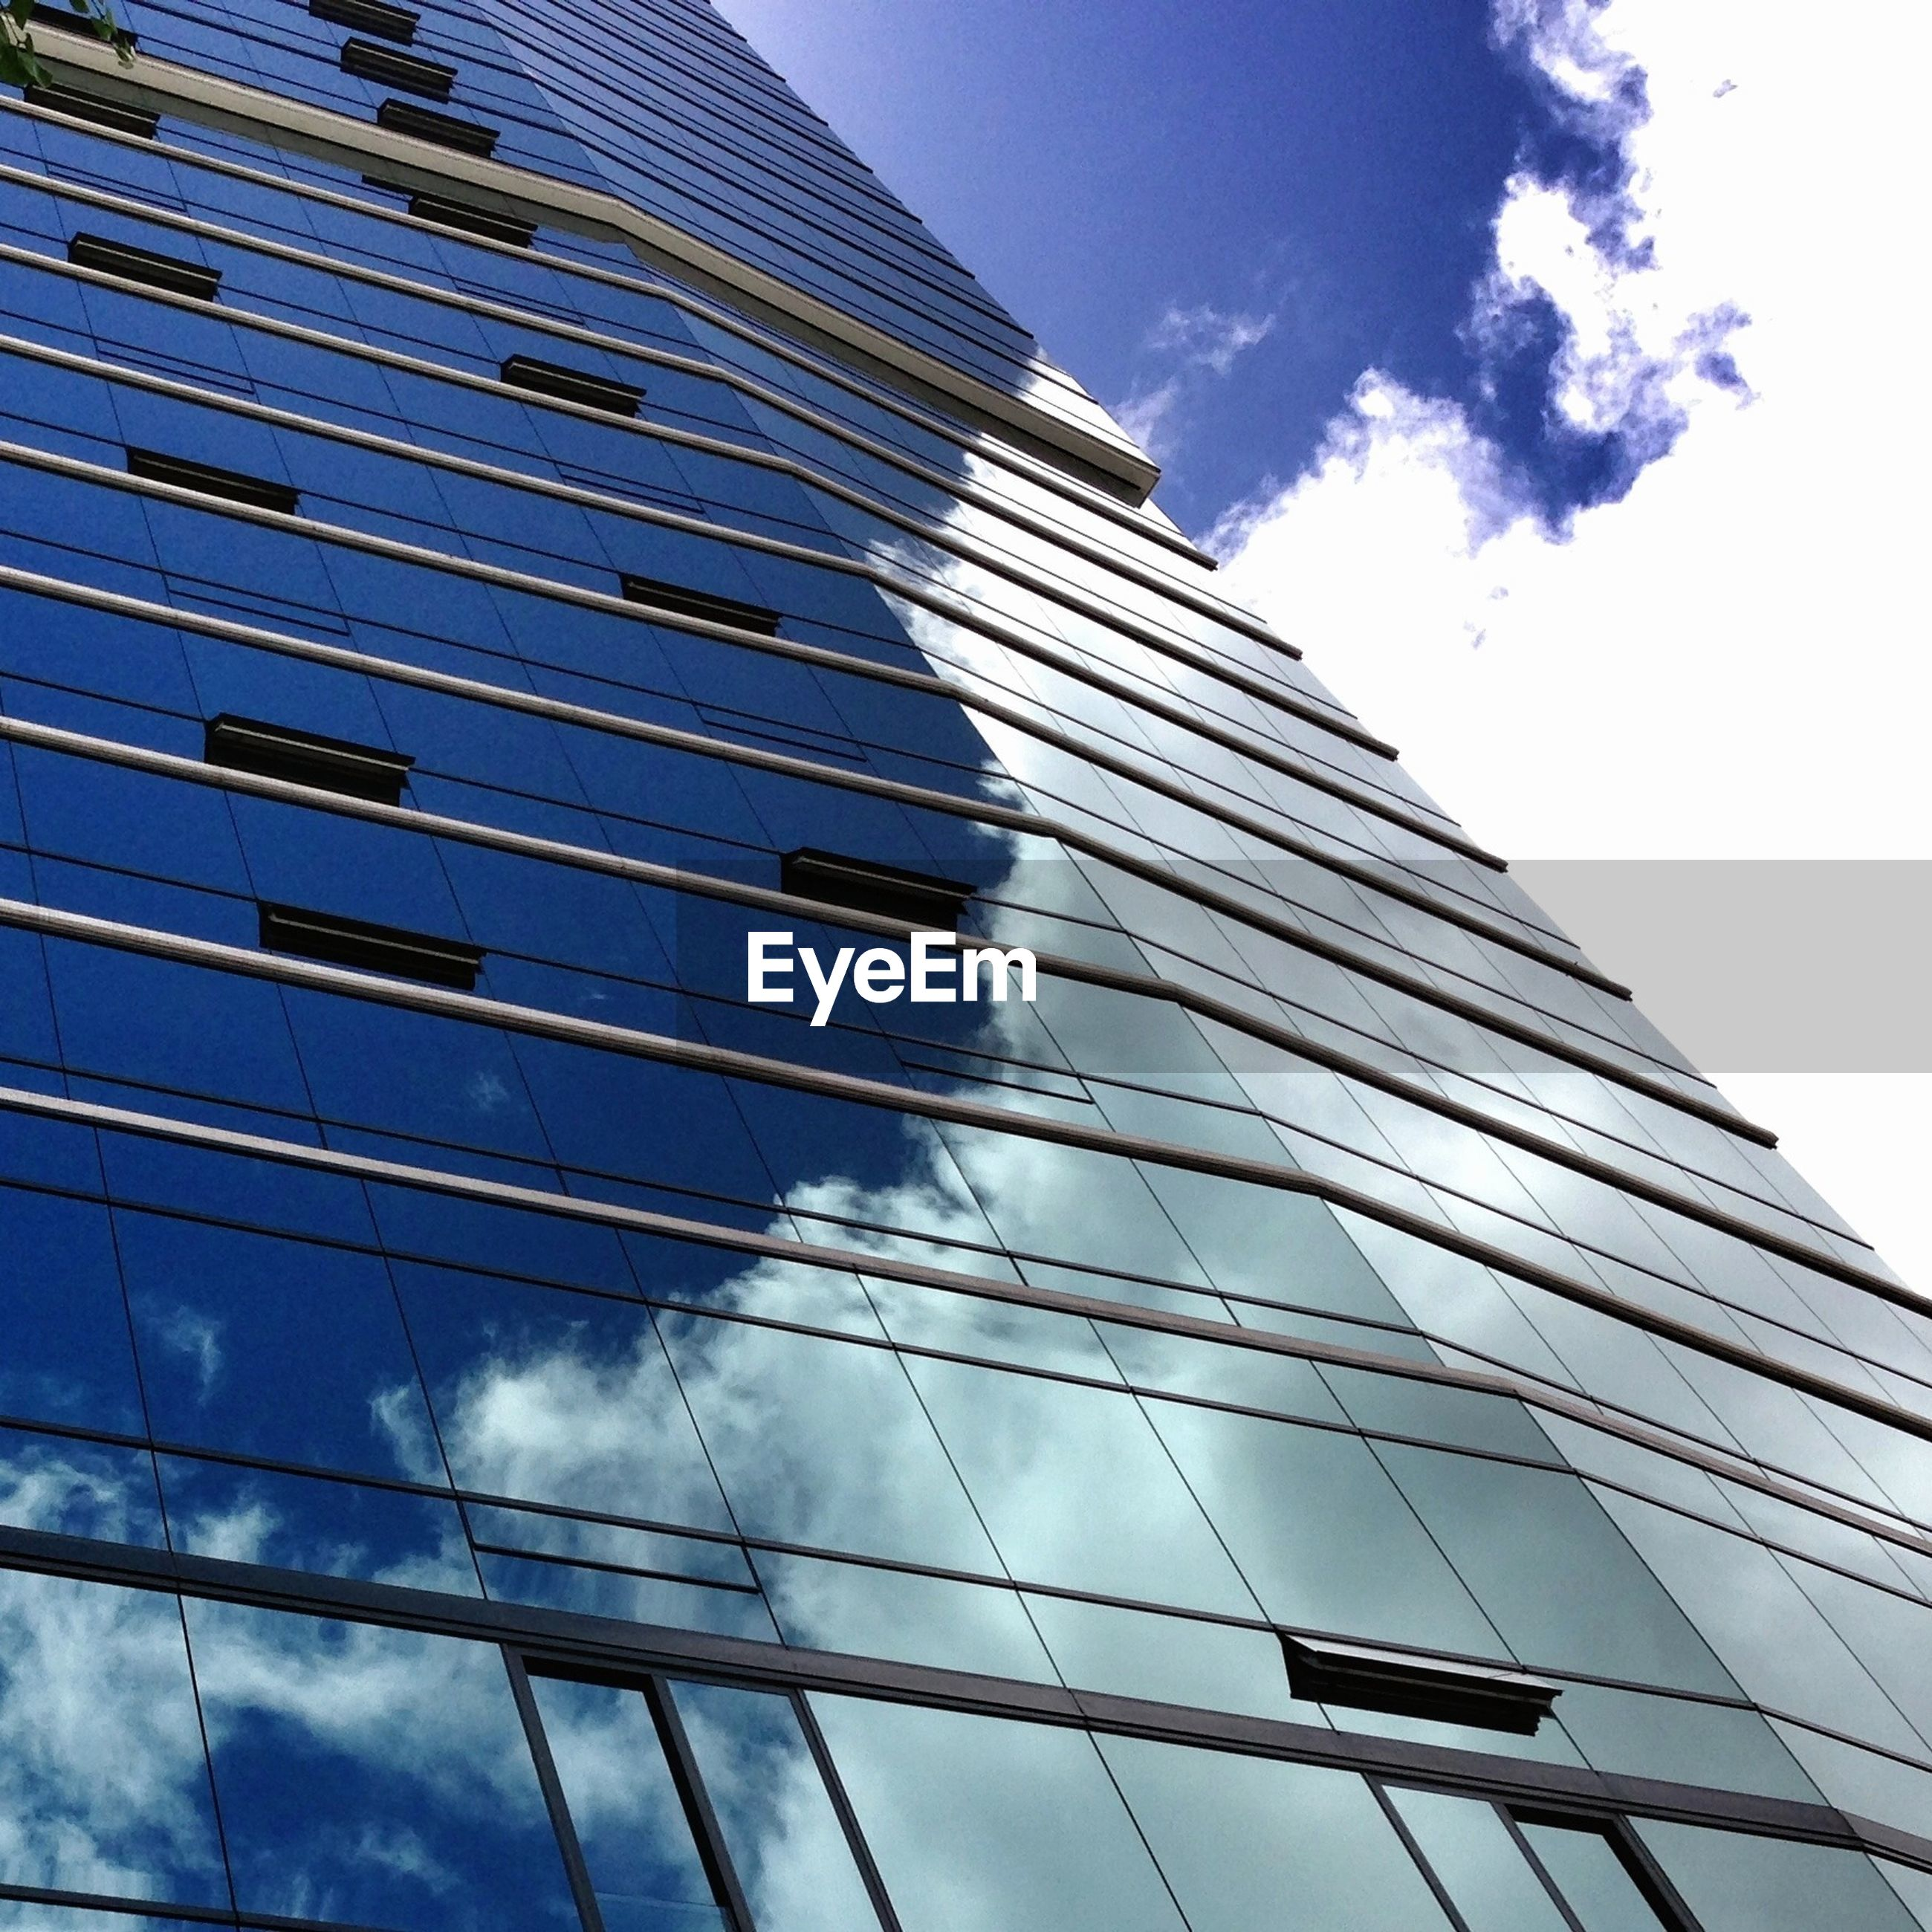 Clouds reflecting in glass facade